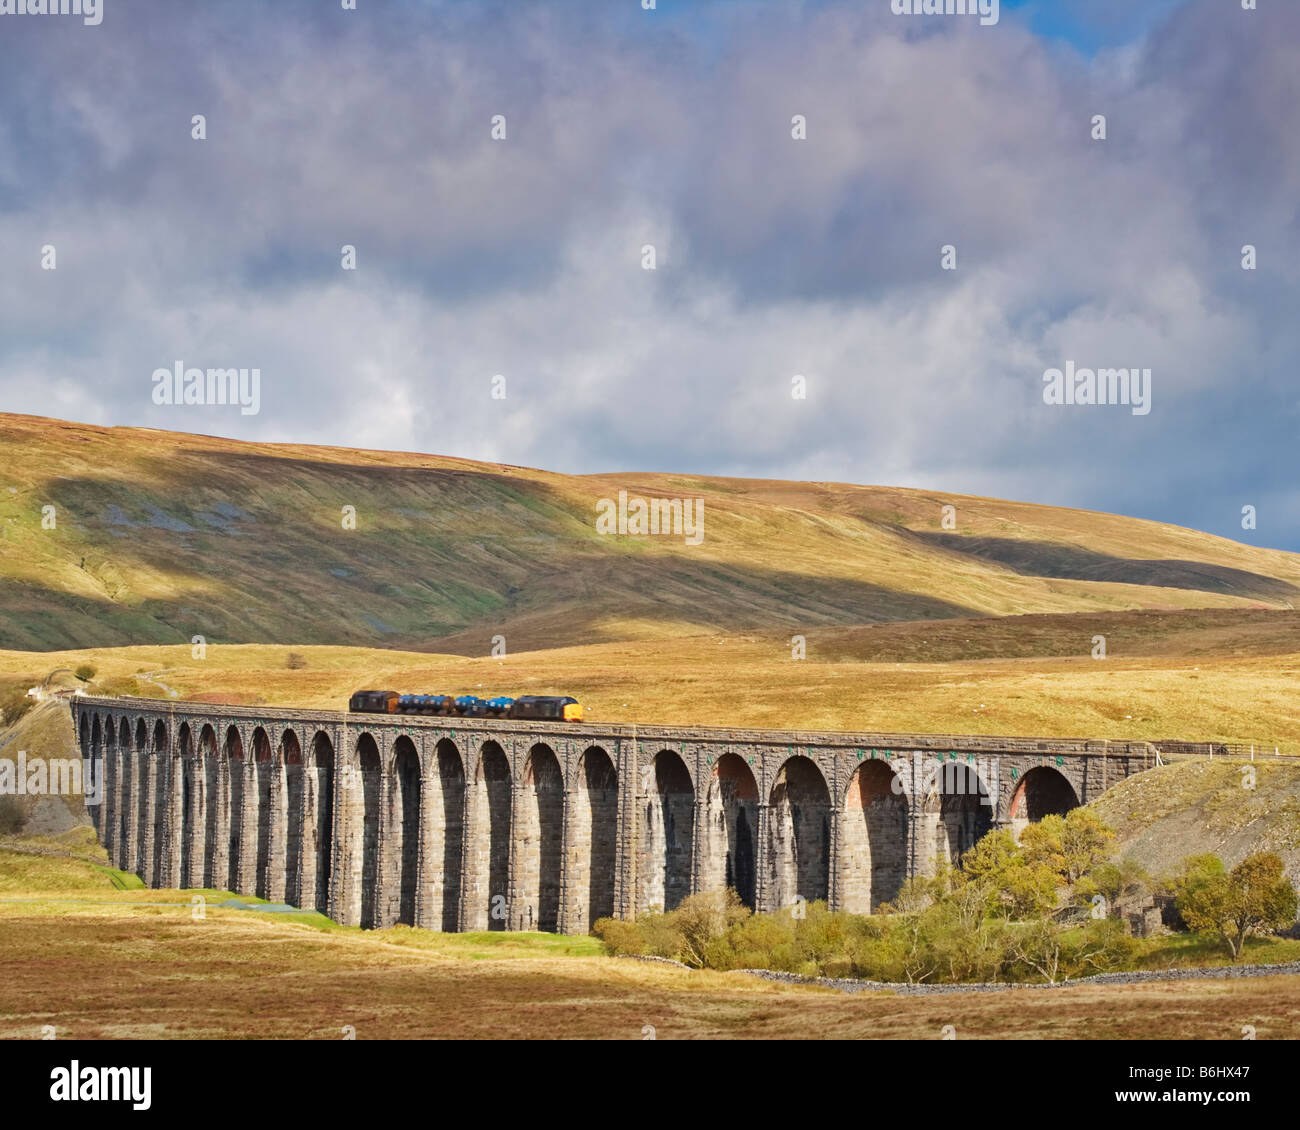 Goods train crossing the Ribblehead Viaduct in the Yorkshire Dales National Park England - Stock Image